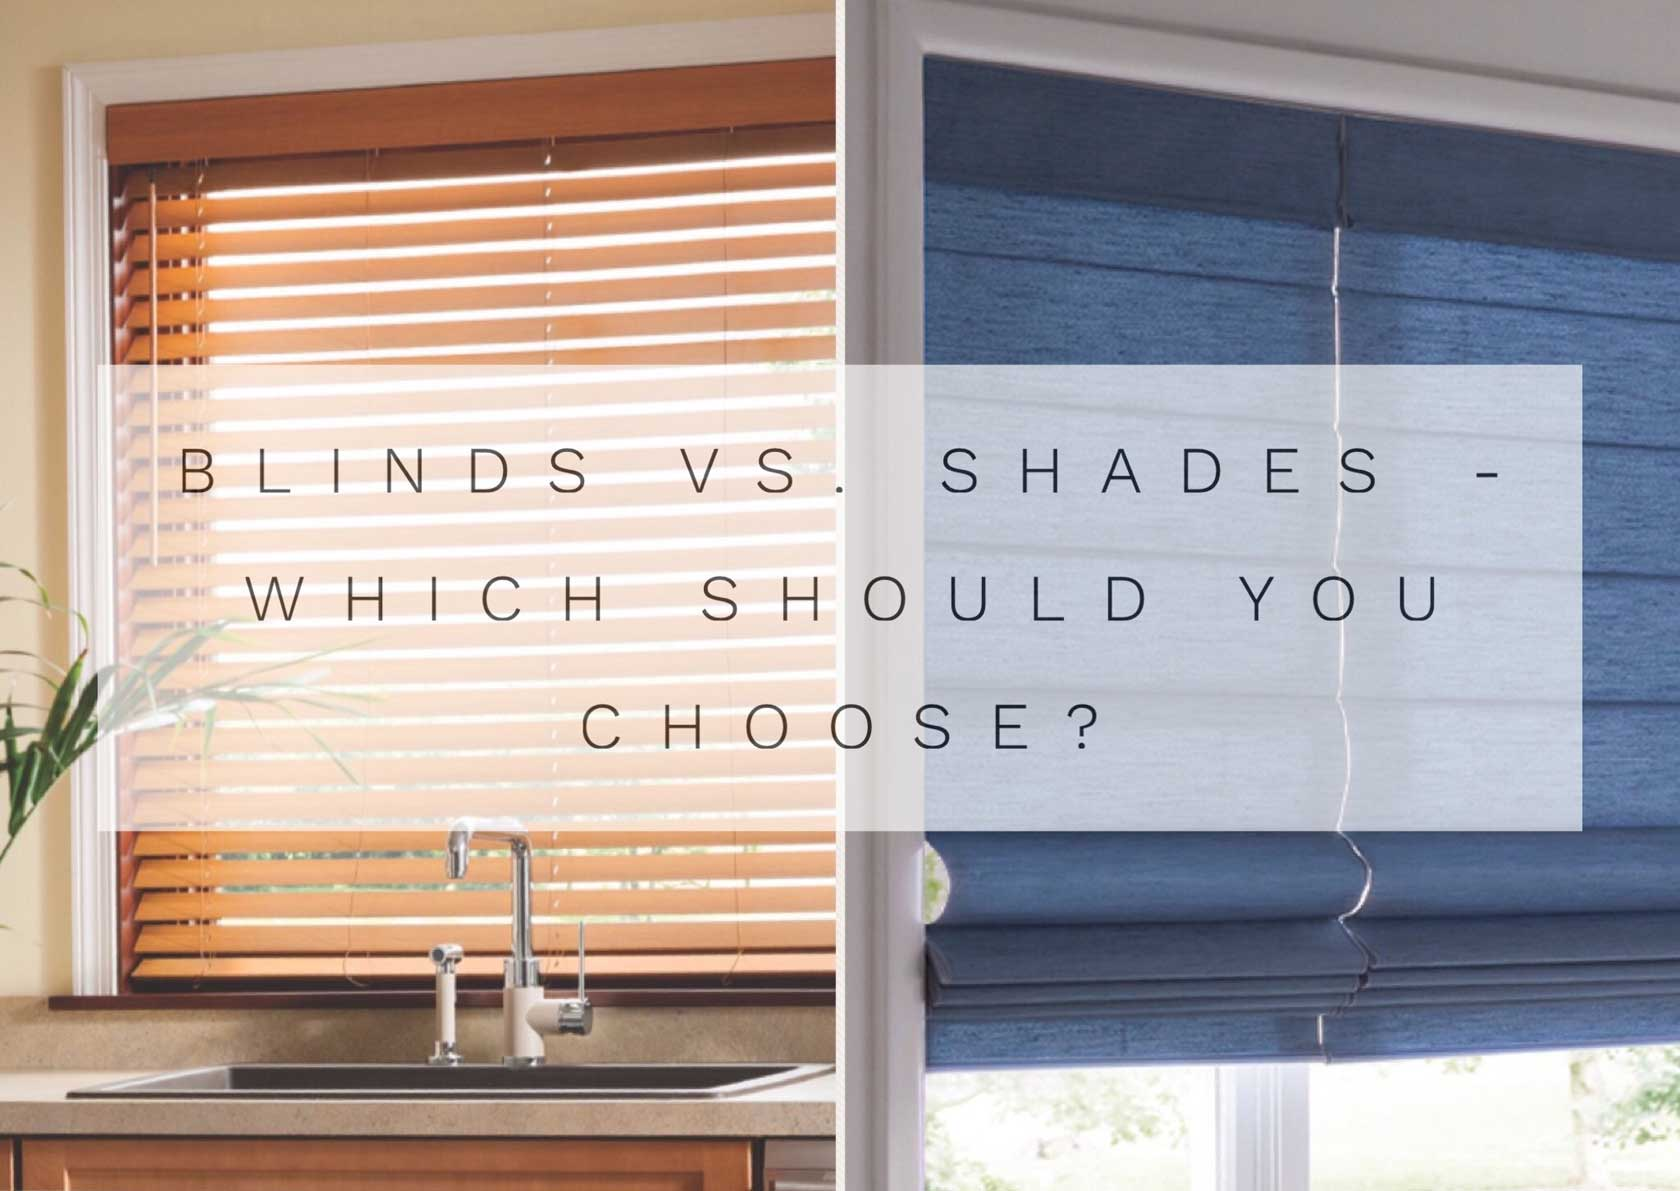 Blinds Vs. Shades